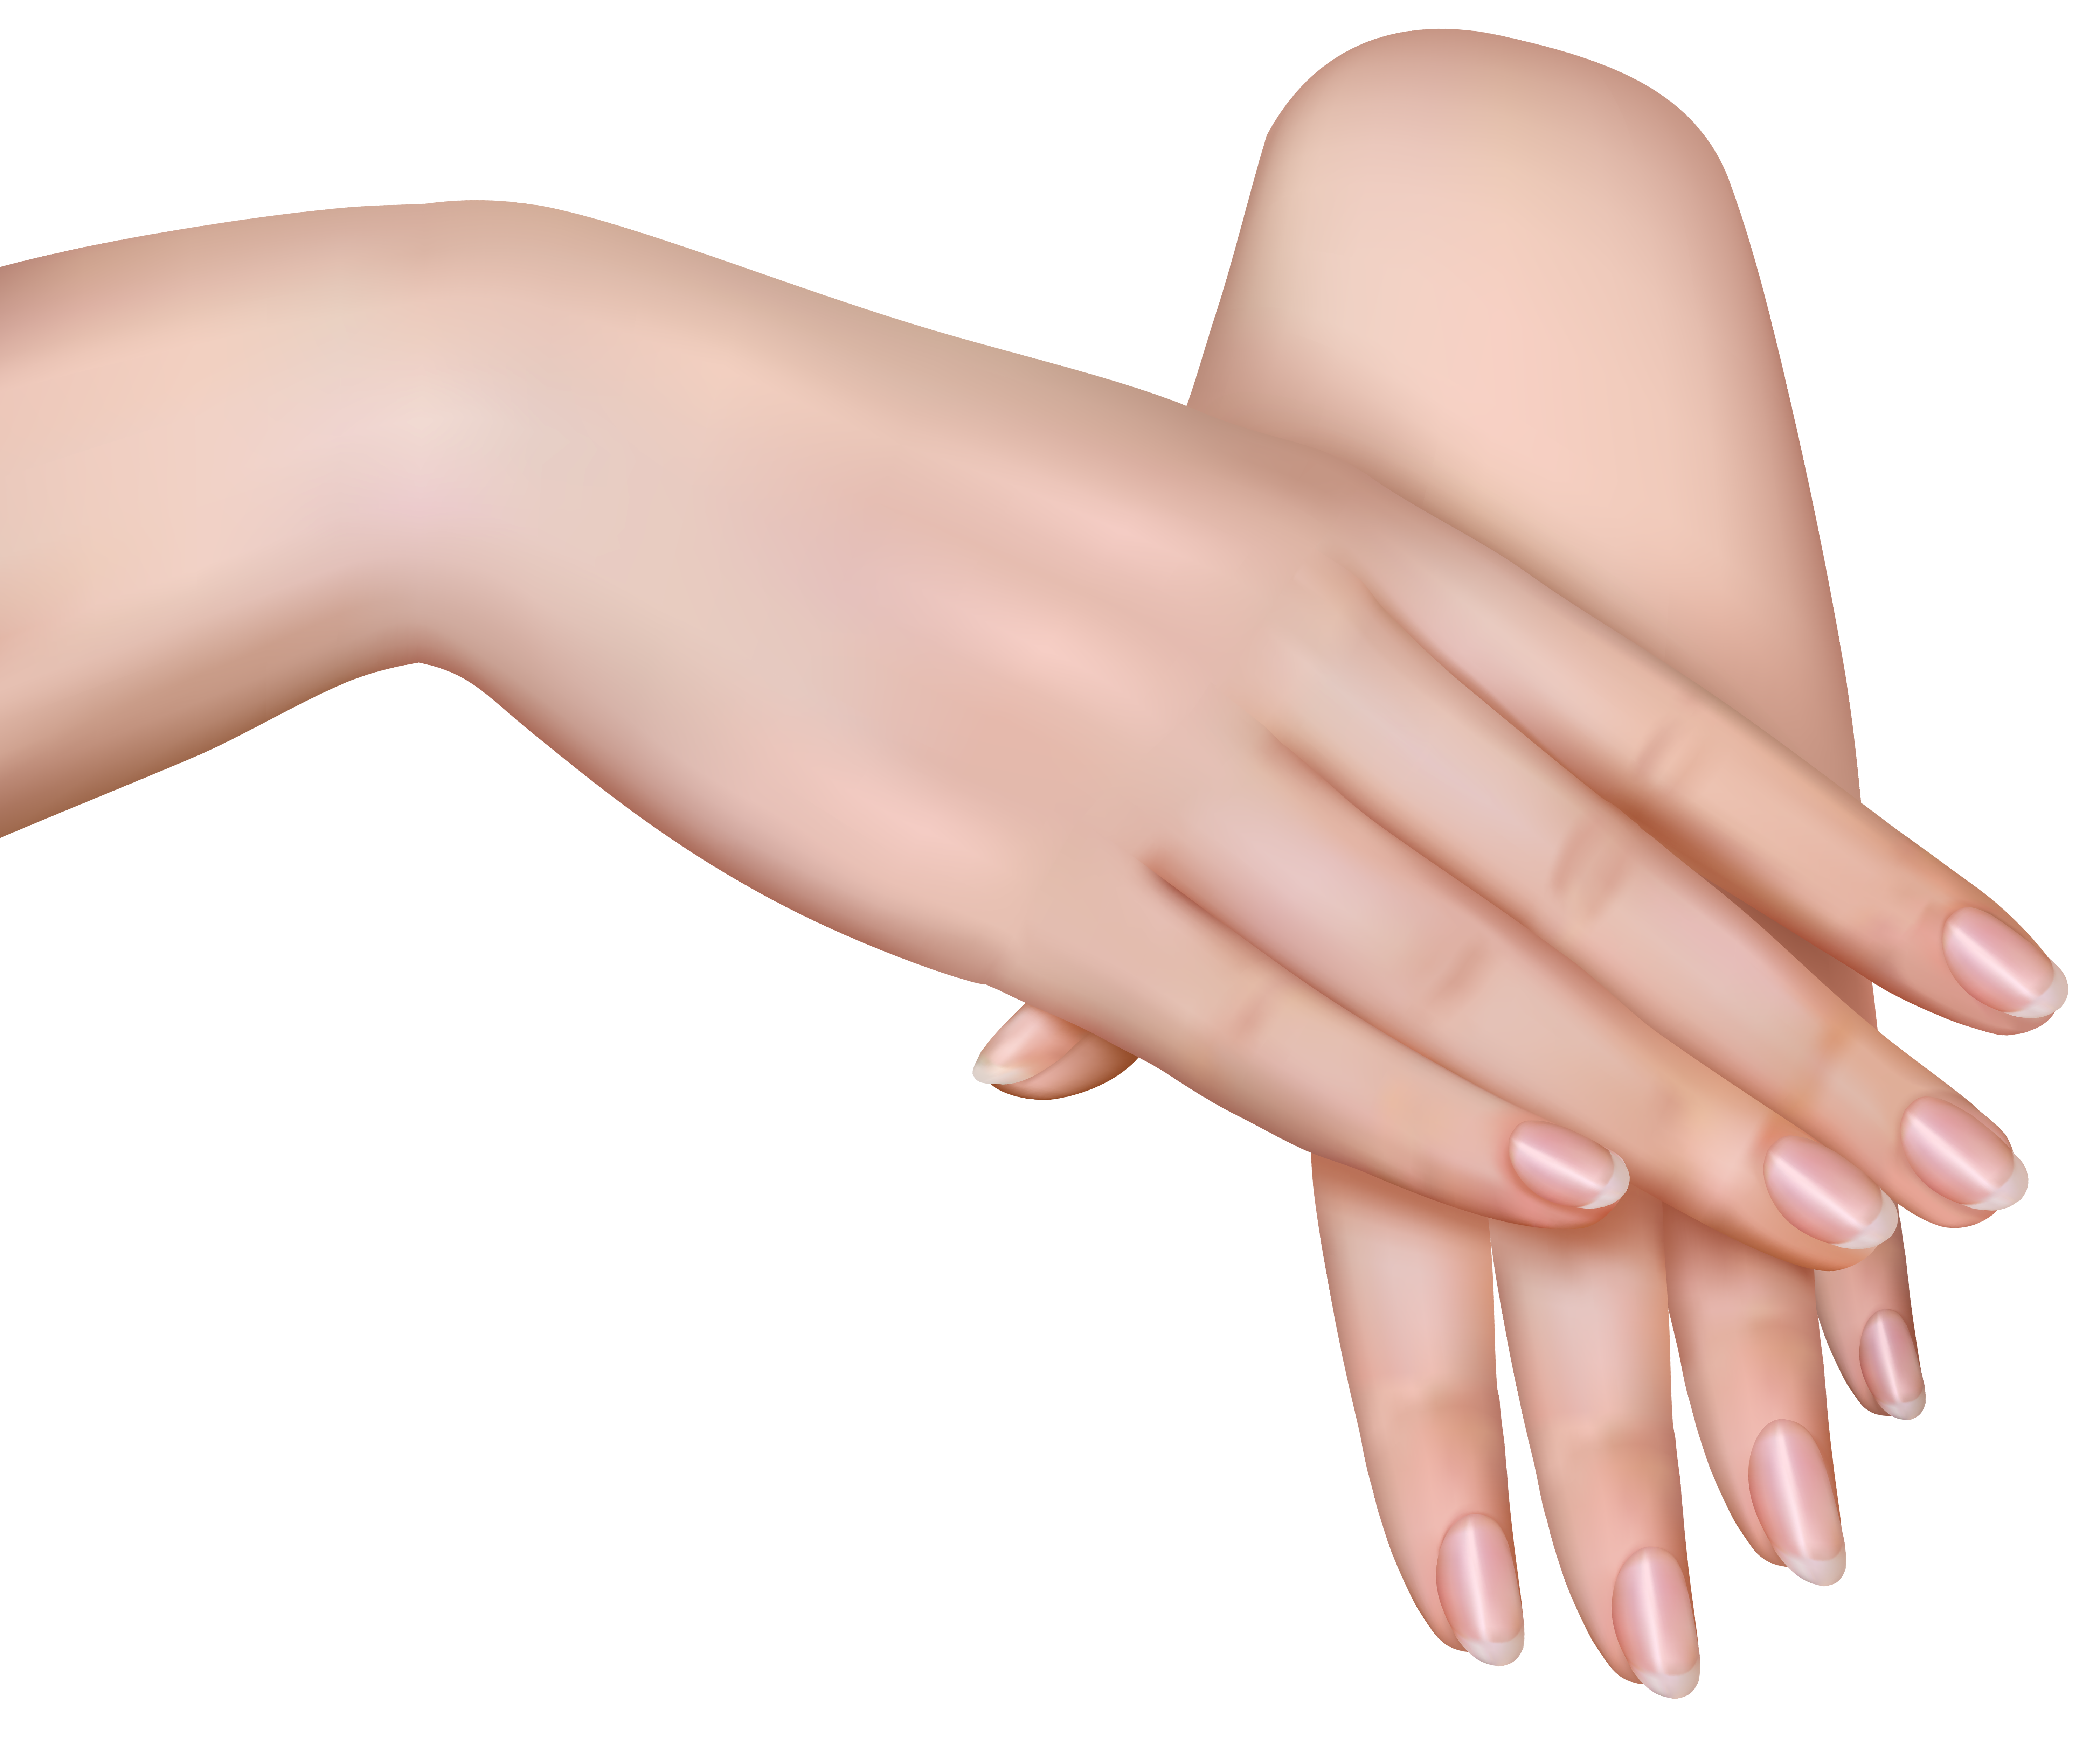 Female Hands Png Clipart Image Gallery Yopriceville High Quality Images And Transparent Png Free Clipart Free Clip Art Clip Art Clipart Images